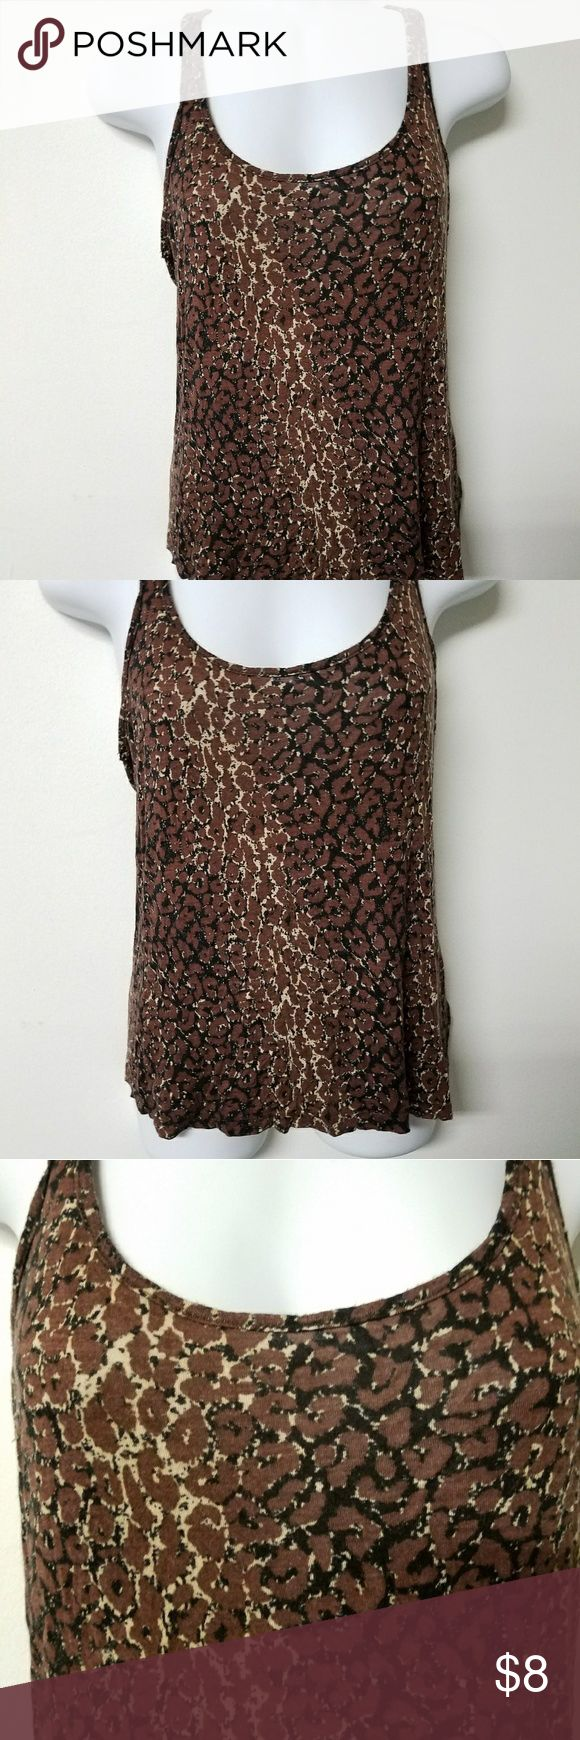 Lily White juniors medium brown leopard tank EUC Up for sale is a Lily White brown and tan leopard tank. It is in excellent used condition and it is a juniors medium. It has a racer back style.   Thanks for looking and please let me know if you have any questions.   Open to offers! 💗 Lily White Tops Tank Tops